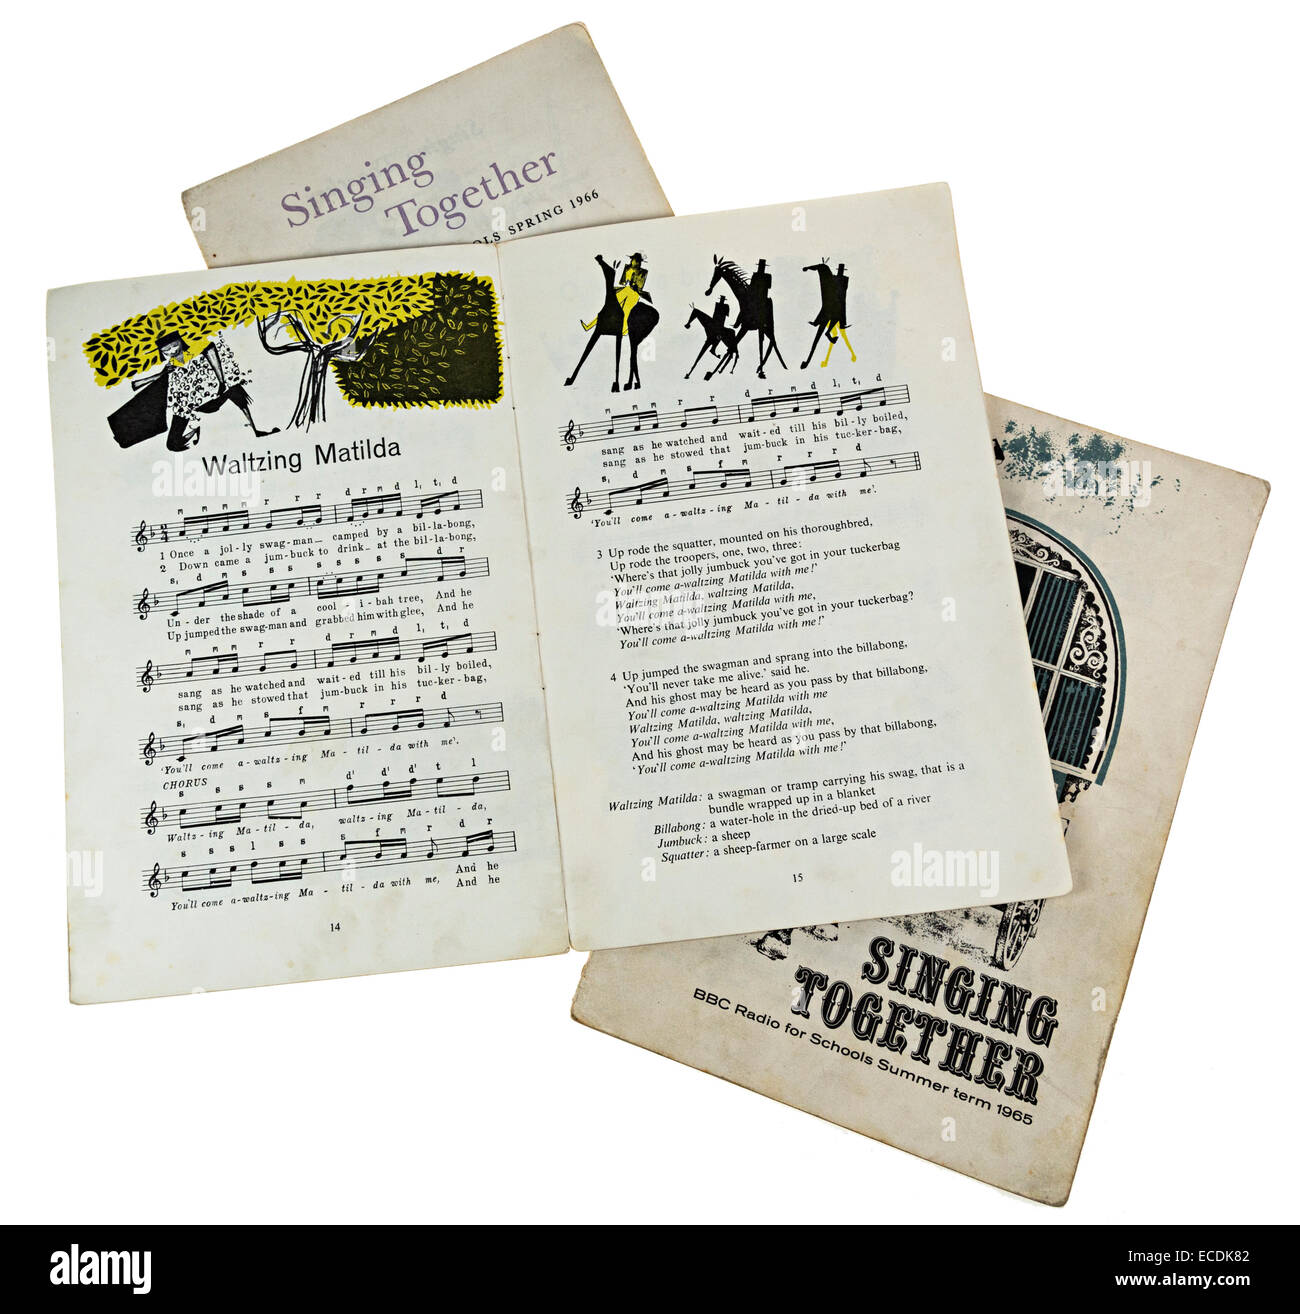 Singing Together song books for BBC Sound Broadcasts to schools in 1964, 1965 and 1966 with Waltzing Matilda music, - Stock Image